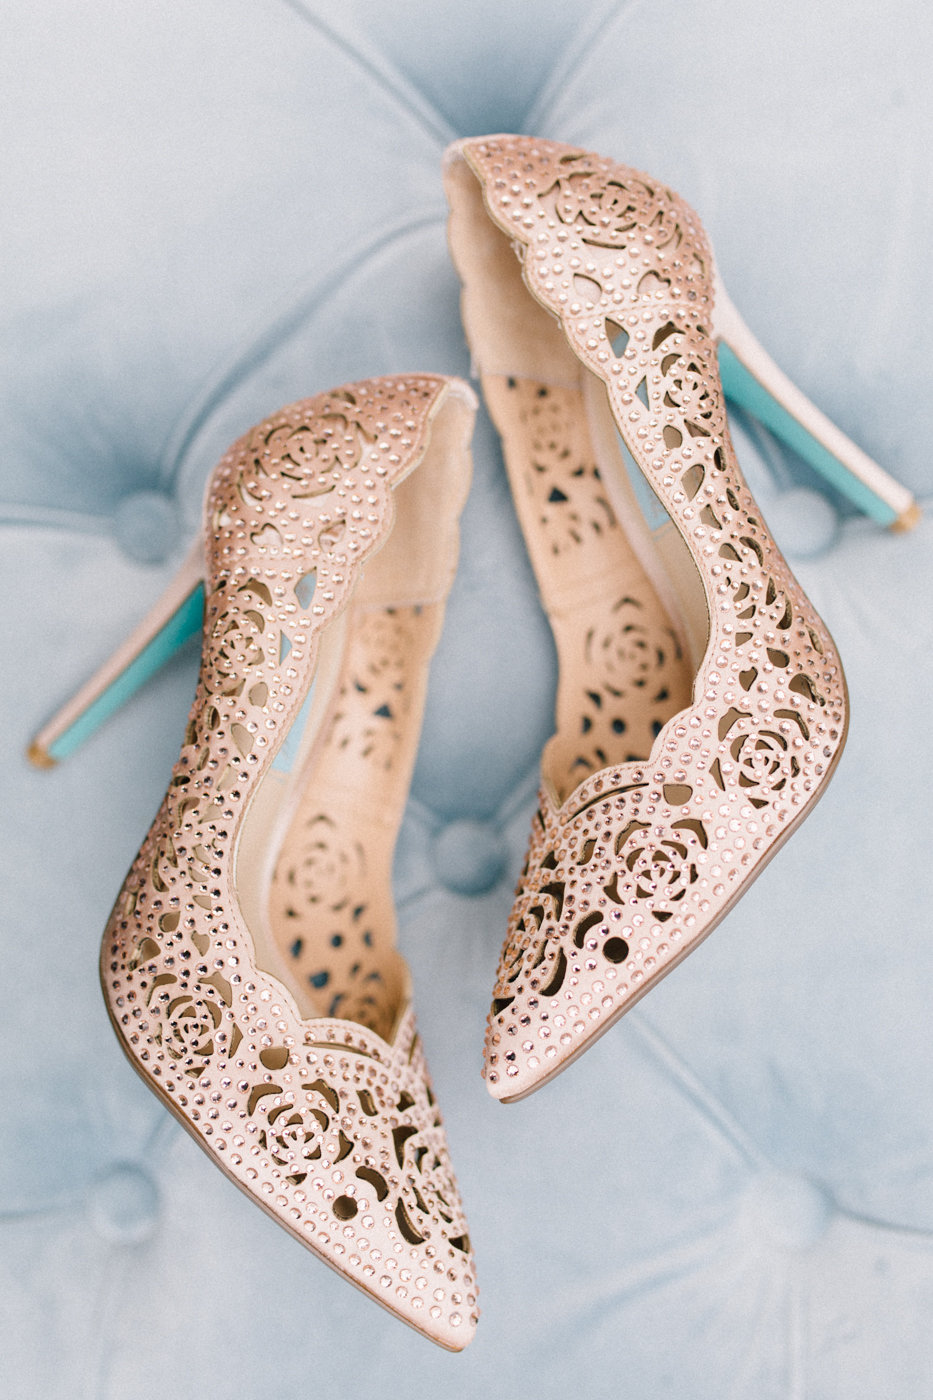 lasesr cut wedding shoes - photo by 4 Corners Photography http://ruffledblog.com/backyard-elopement-inspiration-for-valentines-day